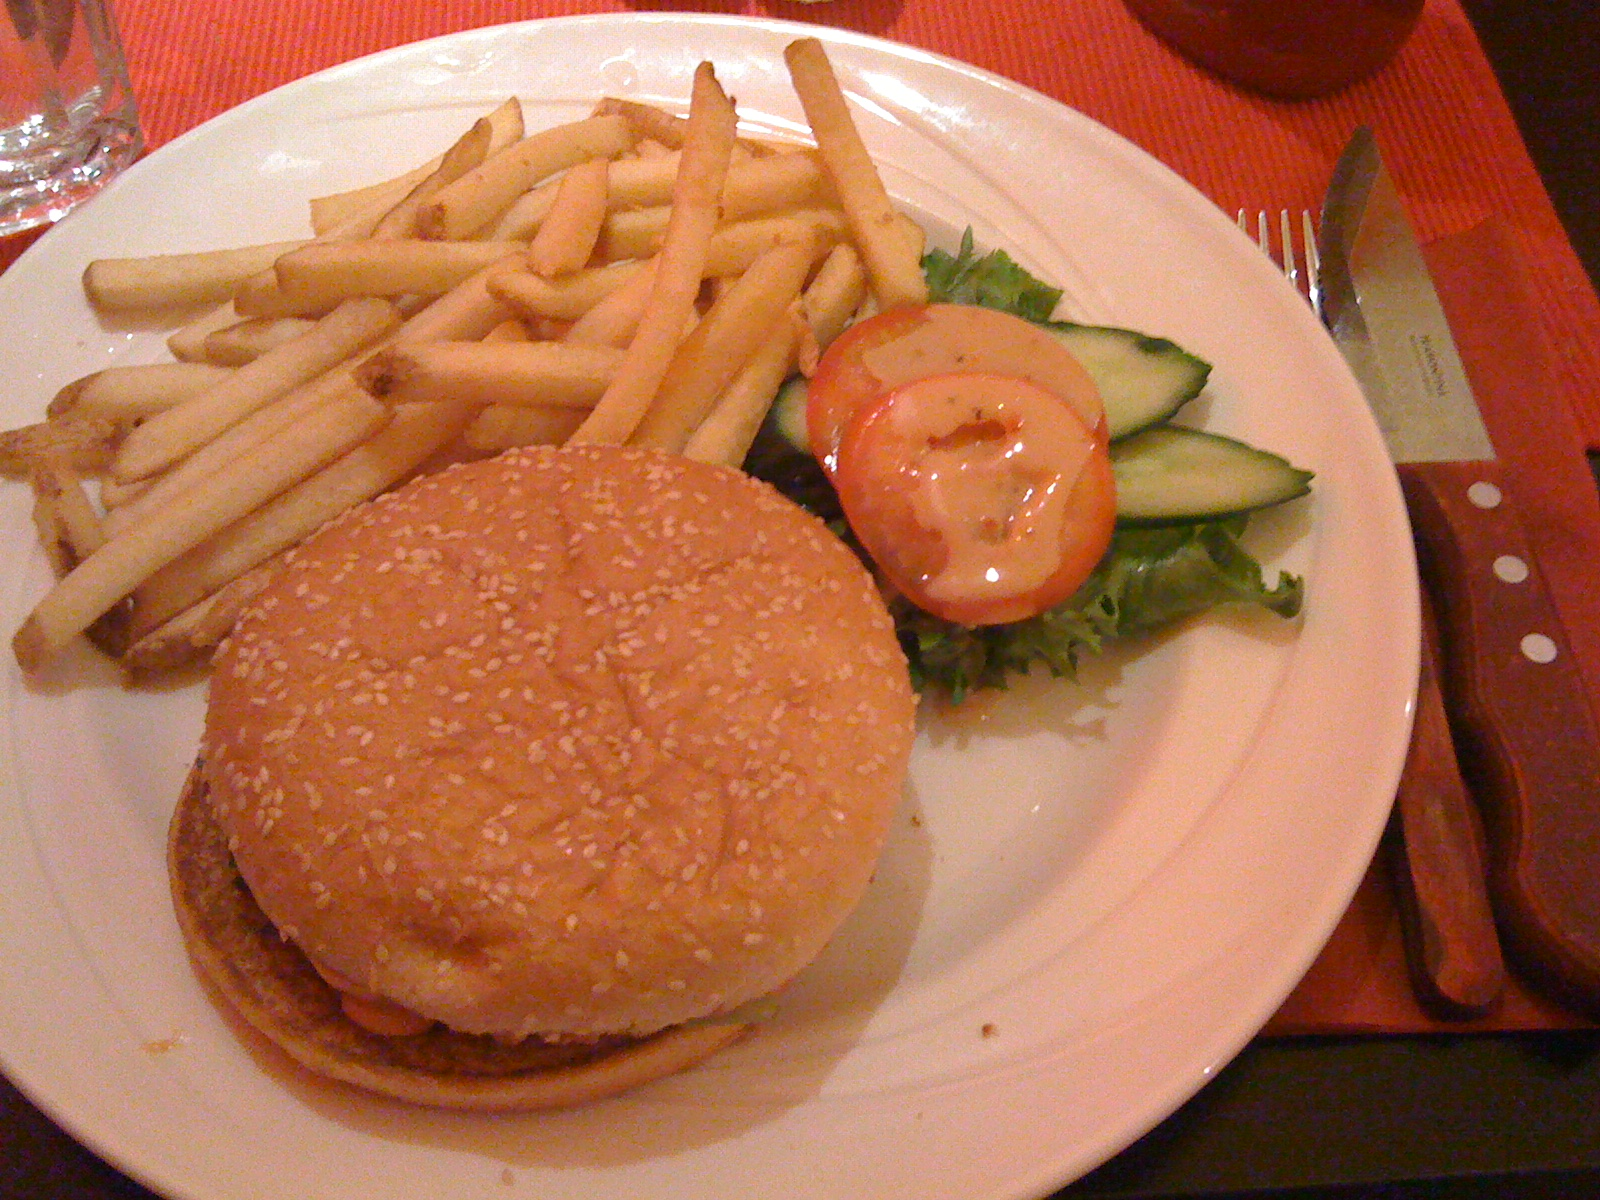 Morrison's Grill & Green, Helsinki: Cheeseburger (lunch)